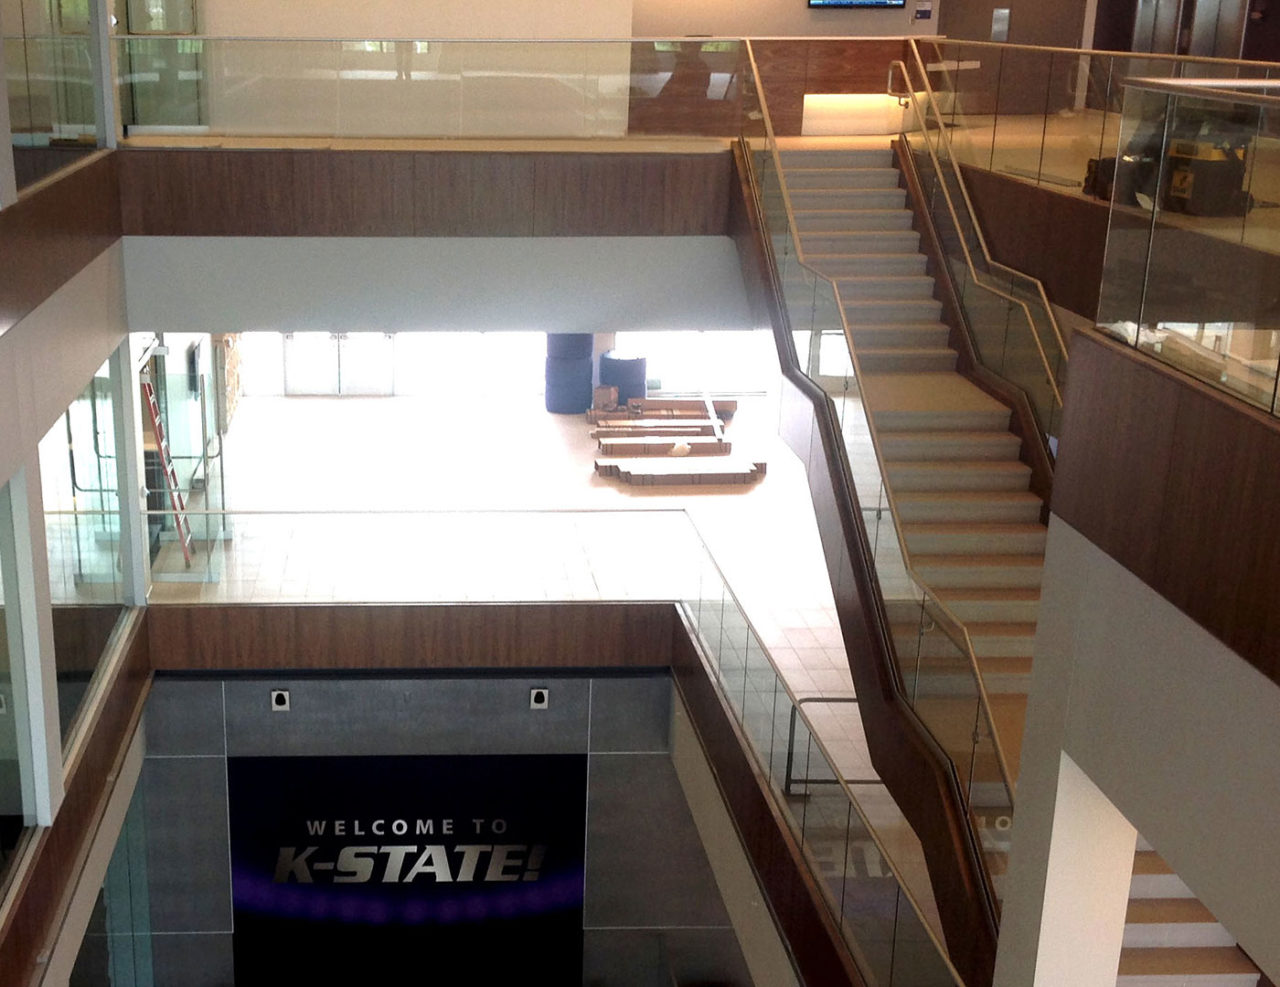 Base Shoe balcony glass railing in 4-story atrium